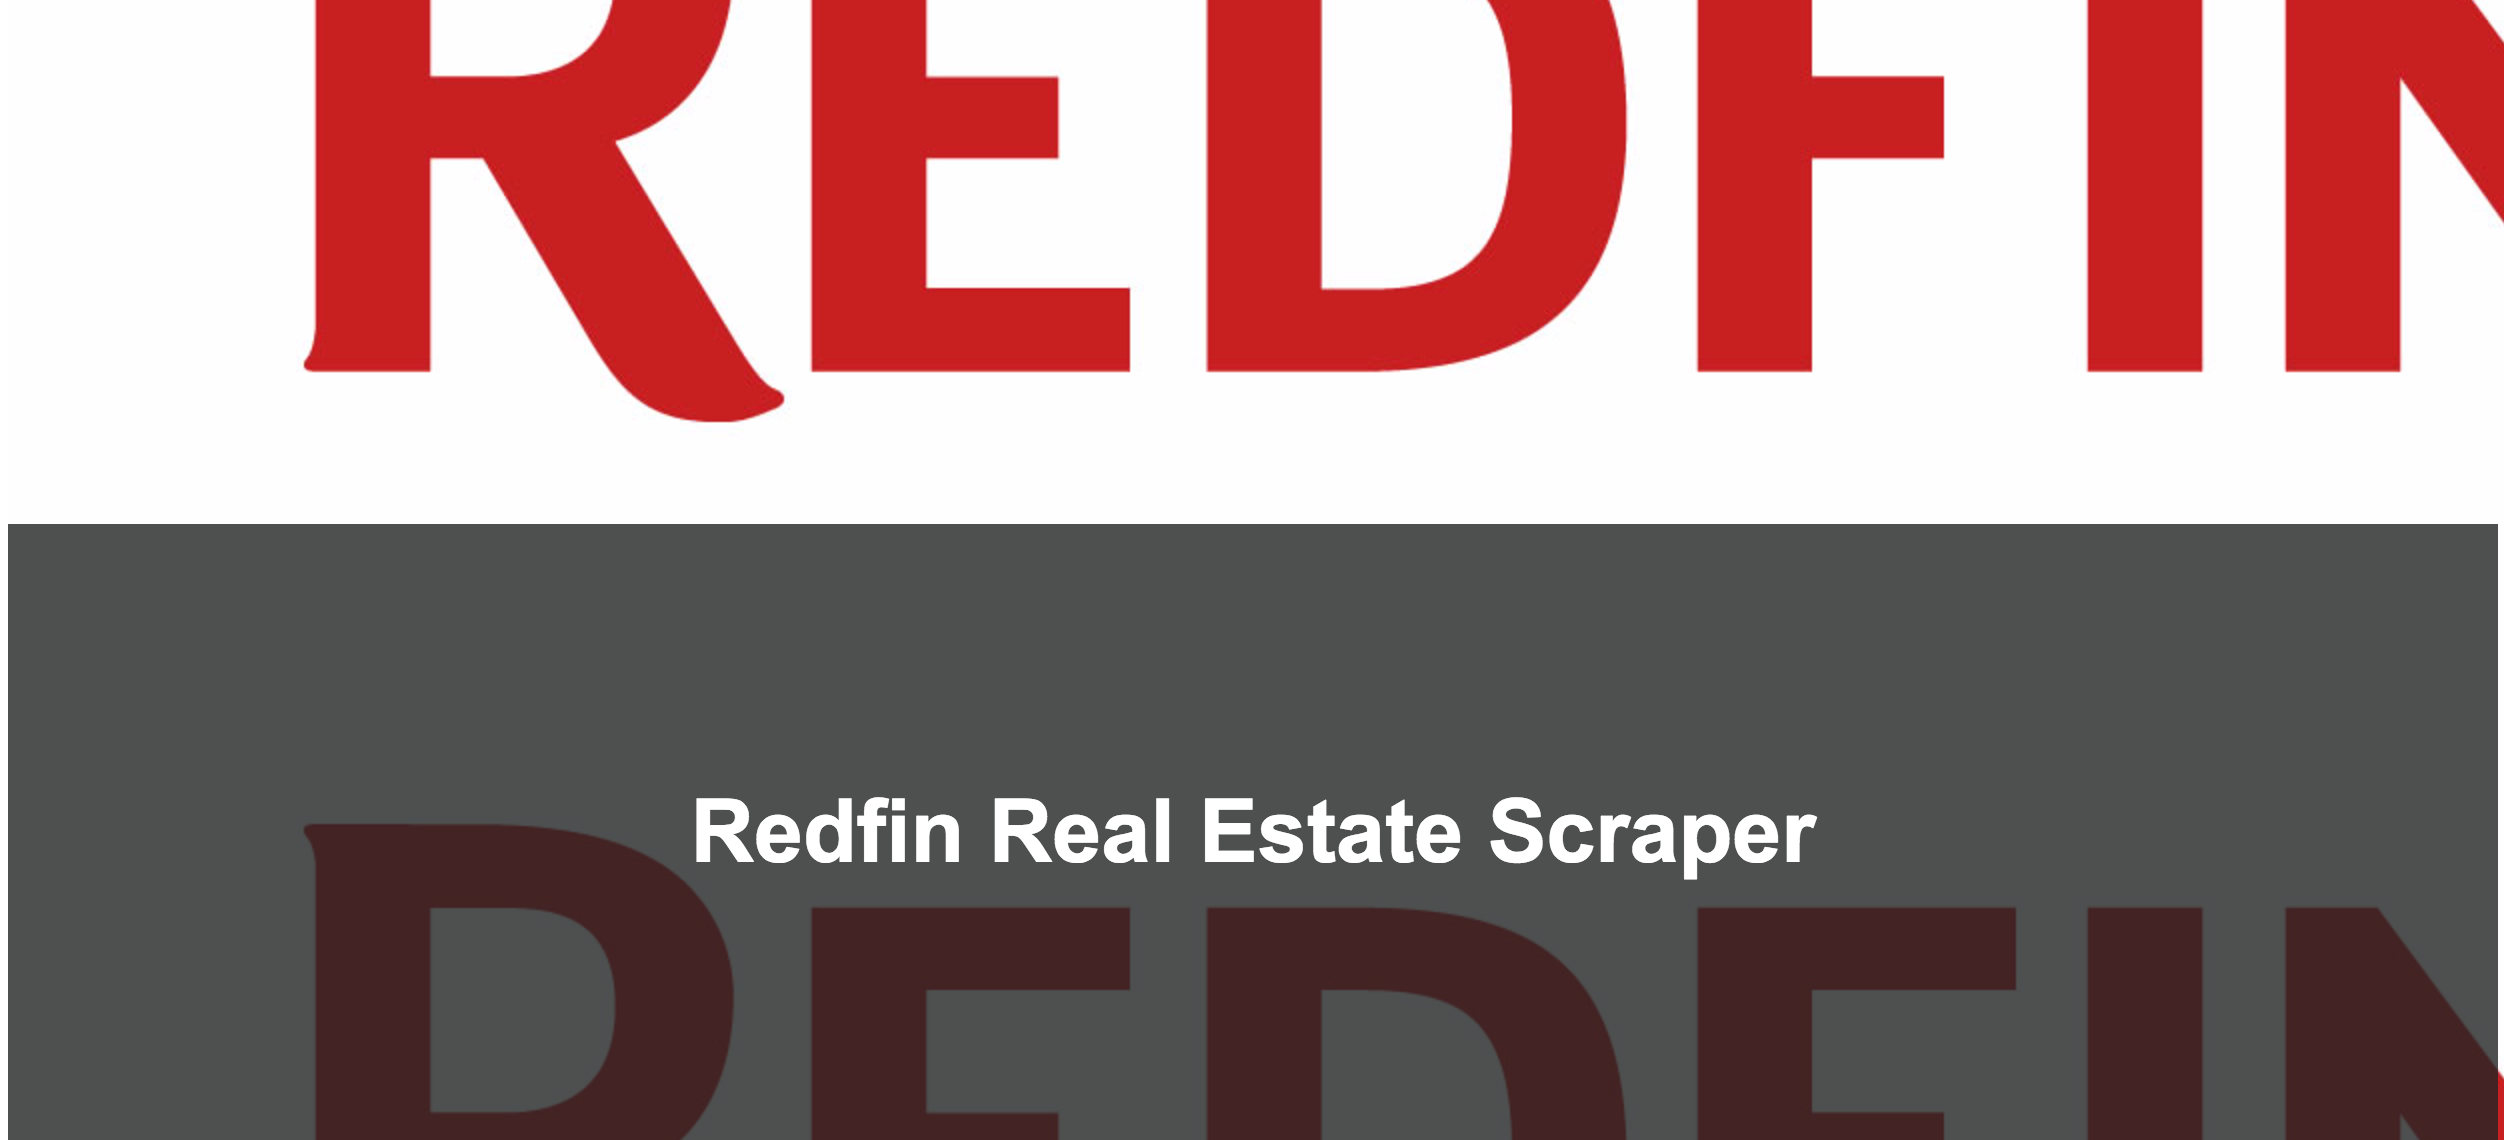 Redfin Real Estate Scraper